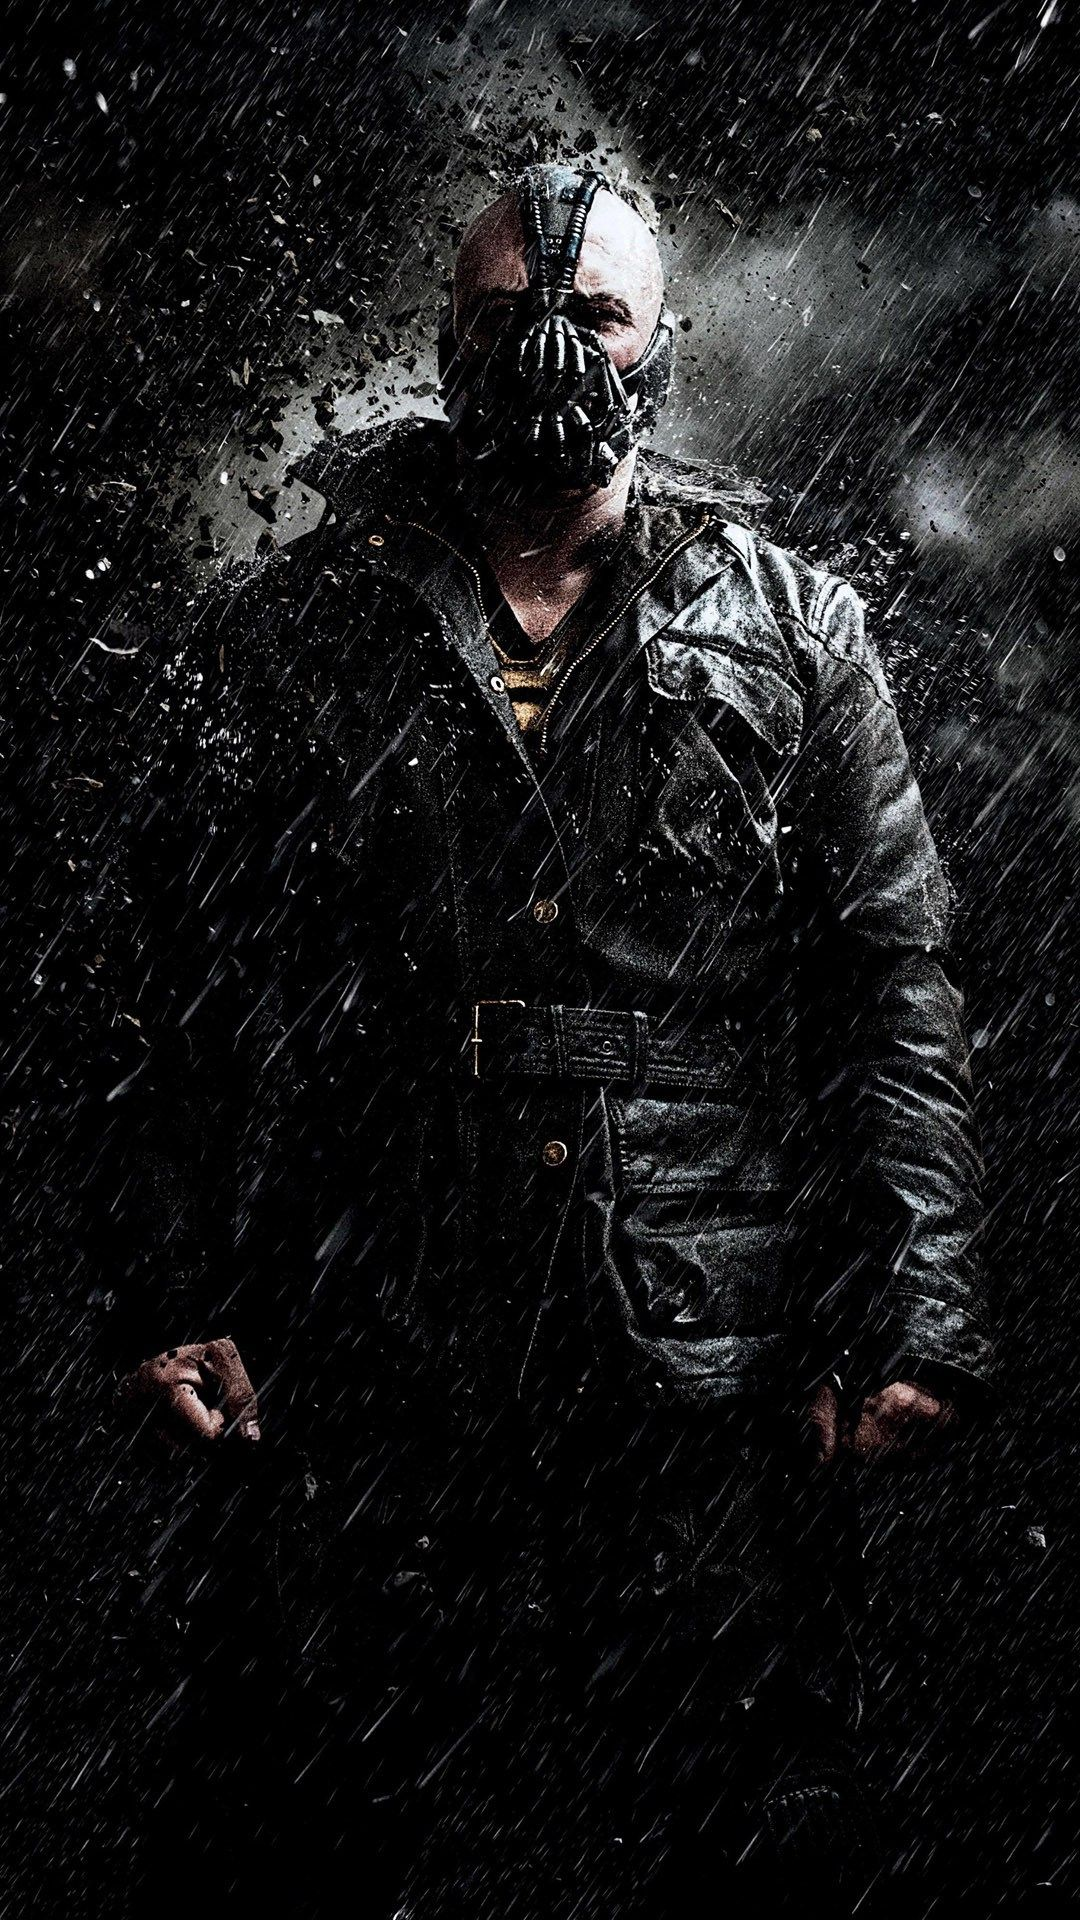 Mobile Wallpapers Is A One Stop Solution For All Your Mobile Needs Gets Best Quality Hd Bane Dark Knight Batman Arkham Knight Scarecrow The Dark Knight Rises